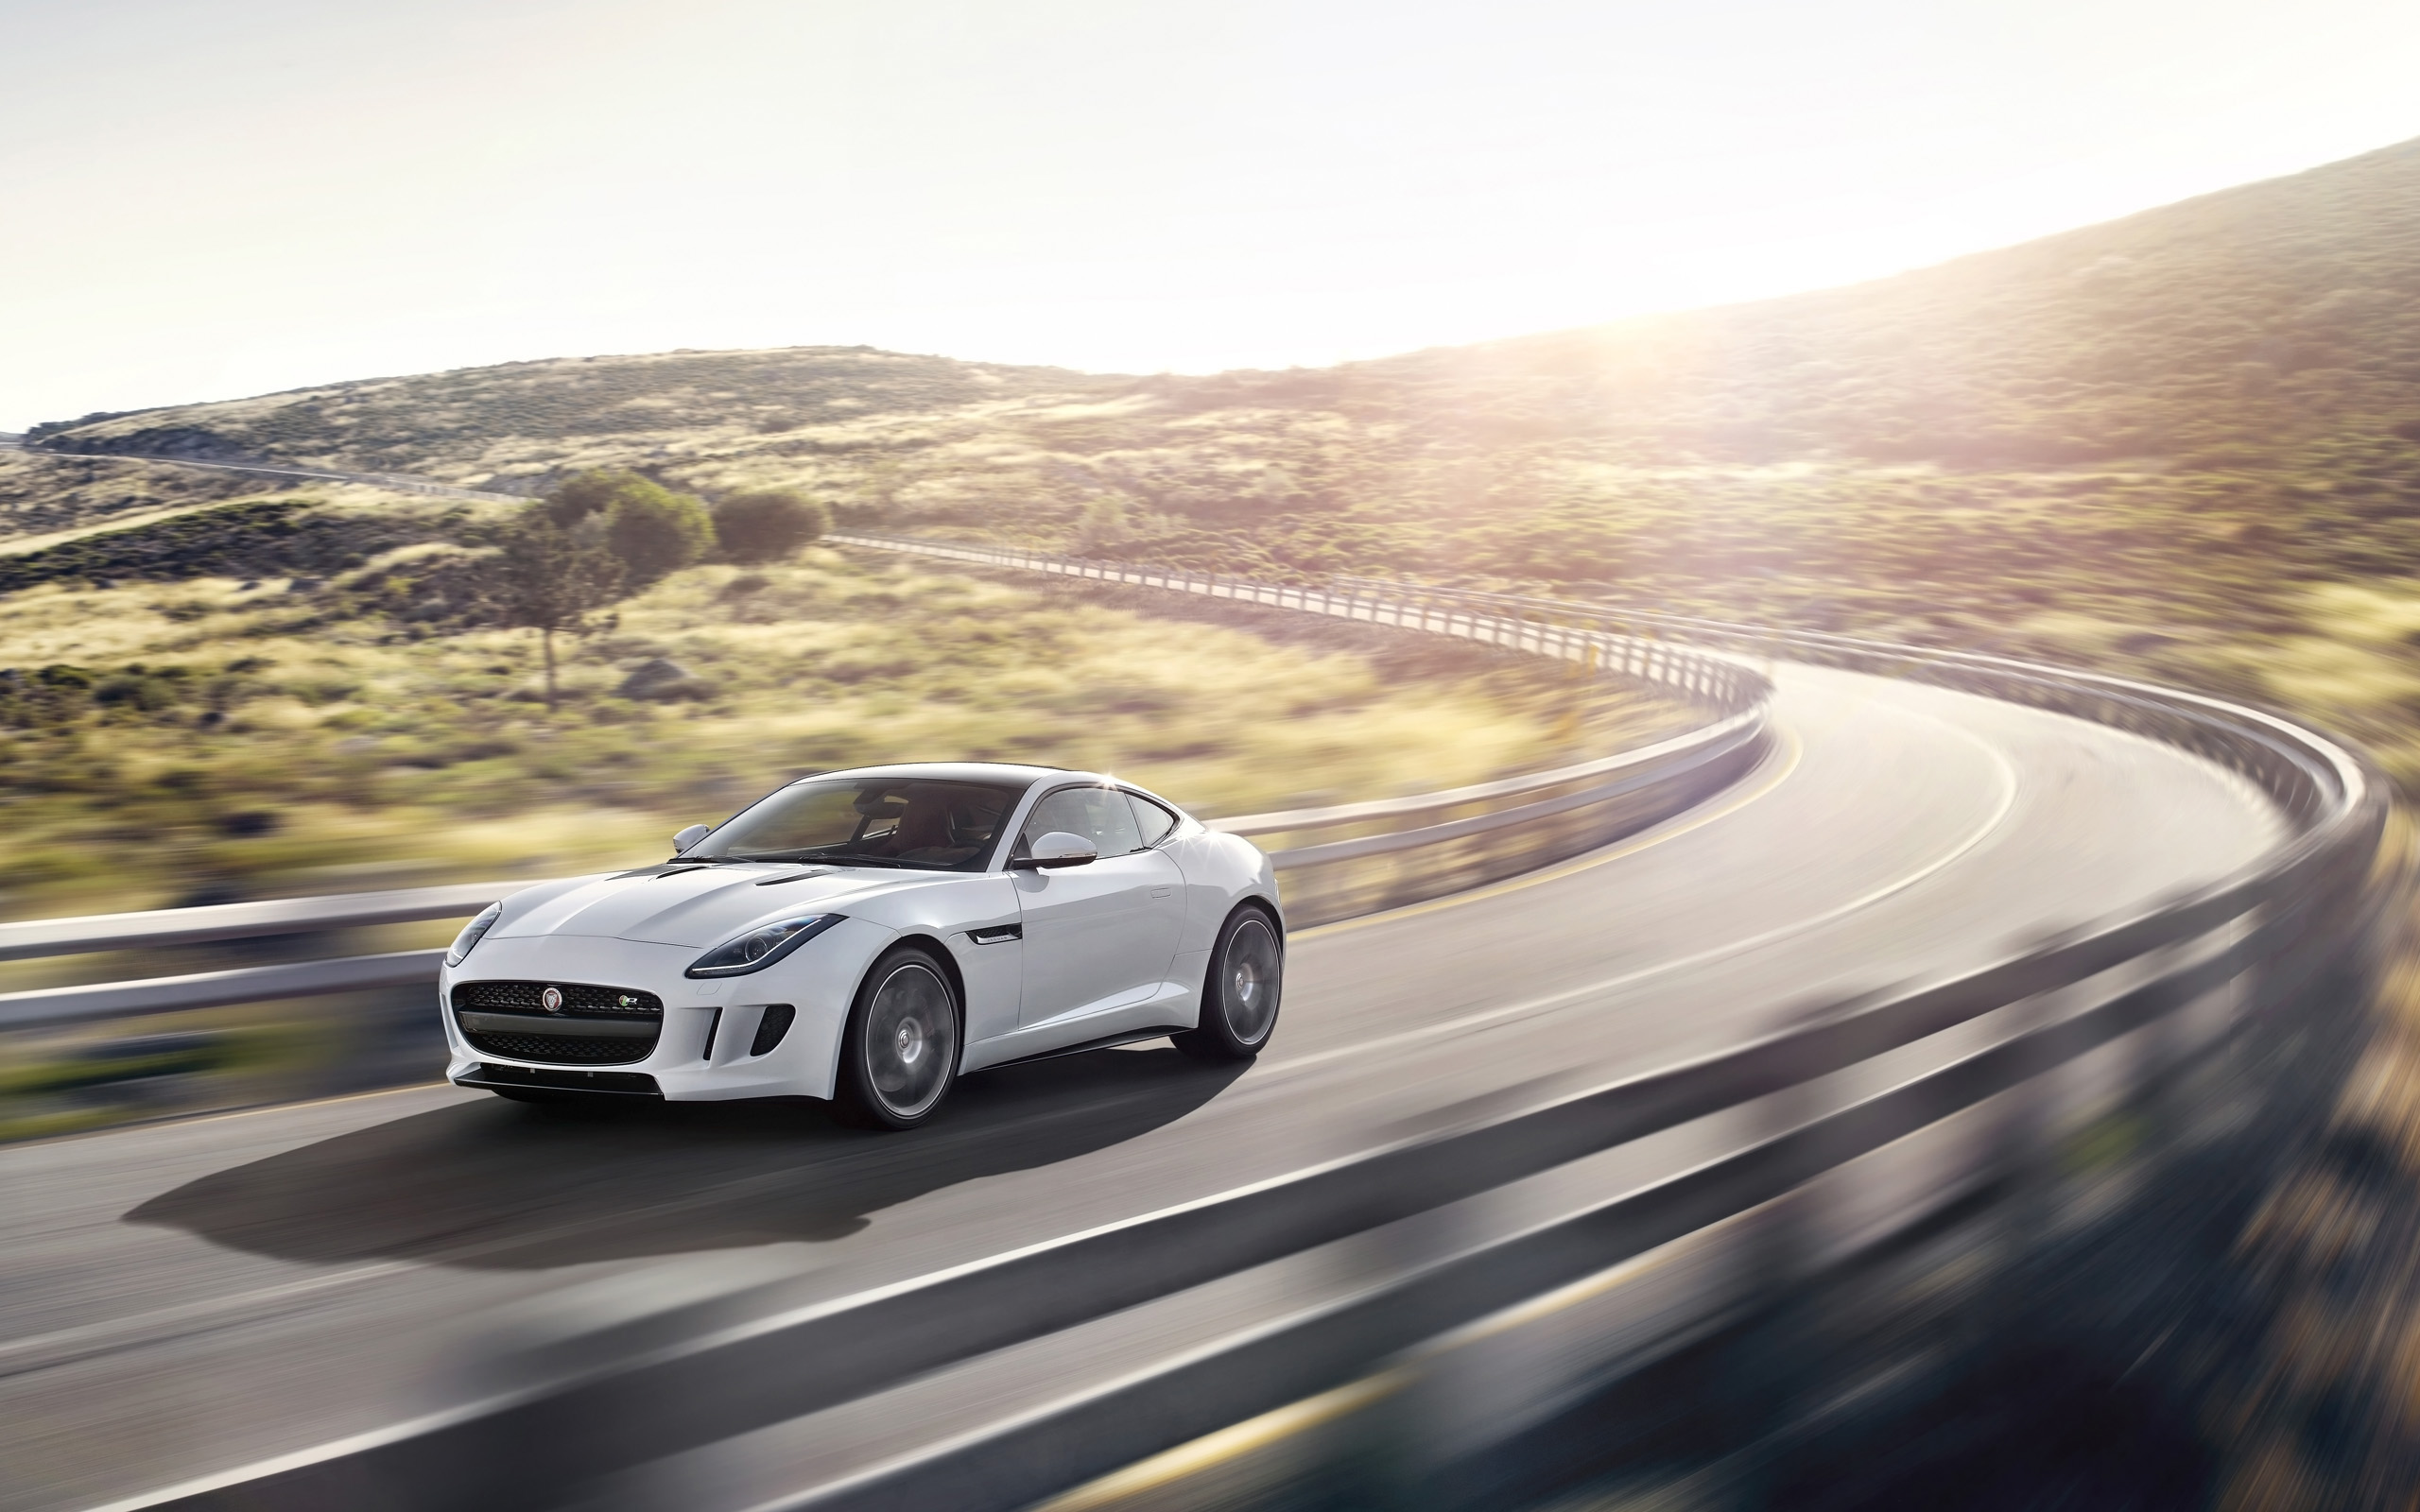 2014 jaguar f type r coupe 5 wallpaper hd car wallpapers. Cars Review. Best American Auto & Cars Review